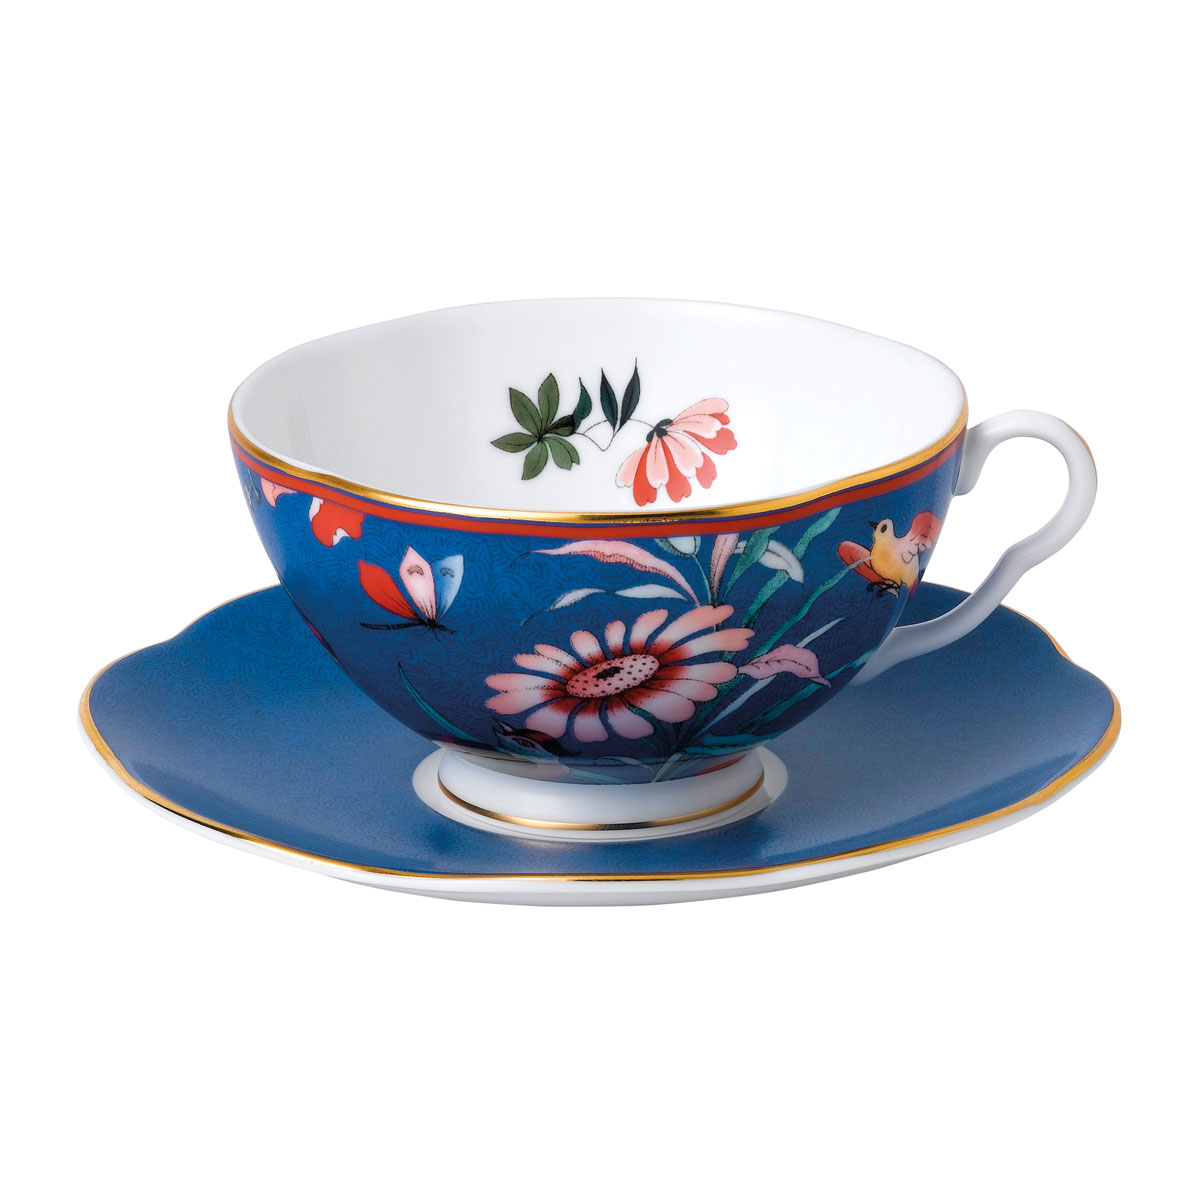 Wedgwood China Paeonia Blush Teacup and Saucer Set Blue